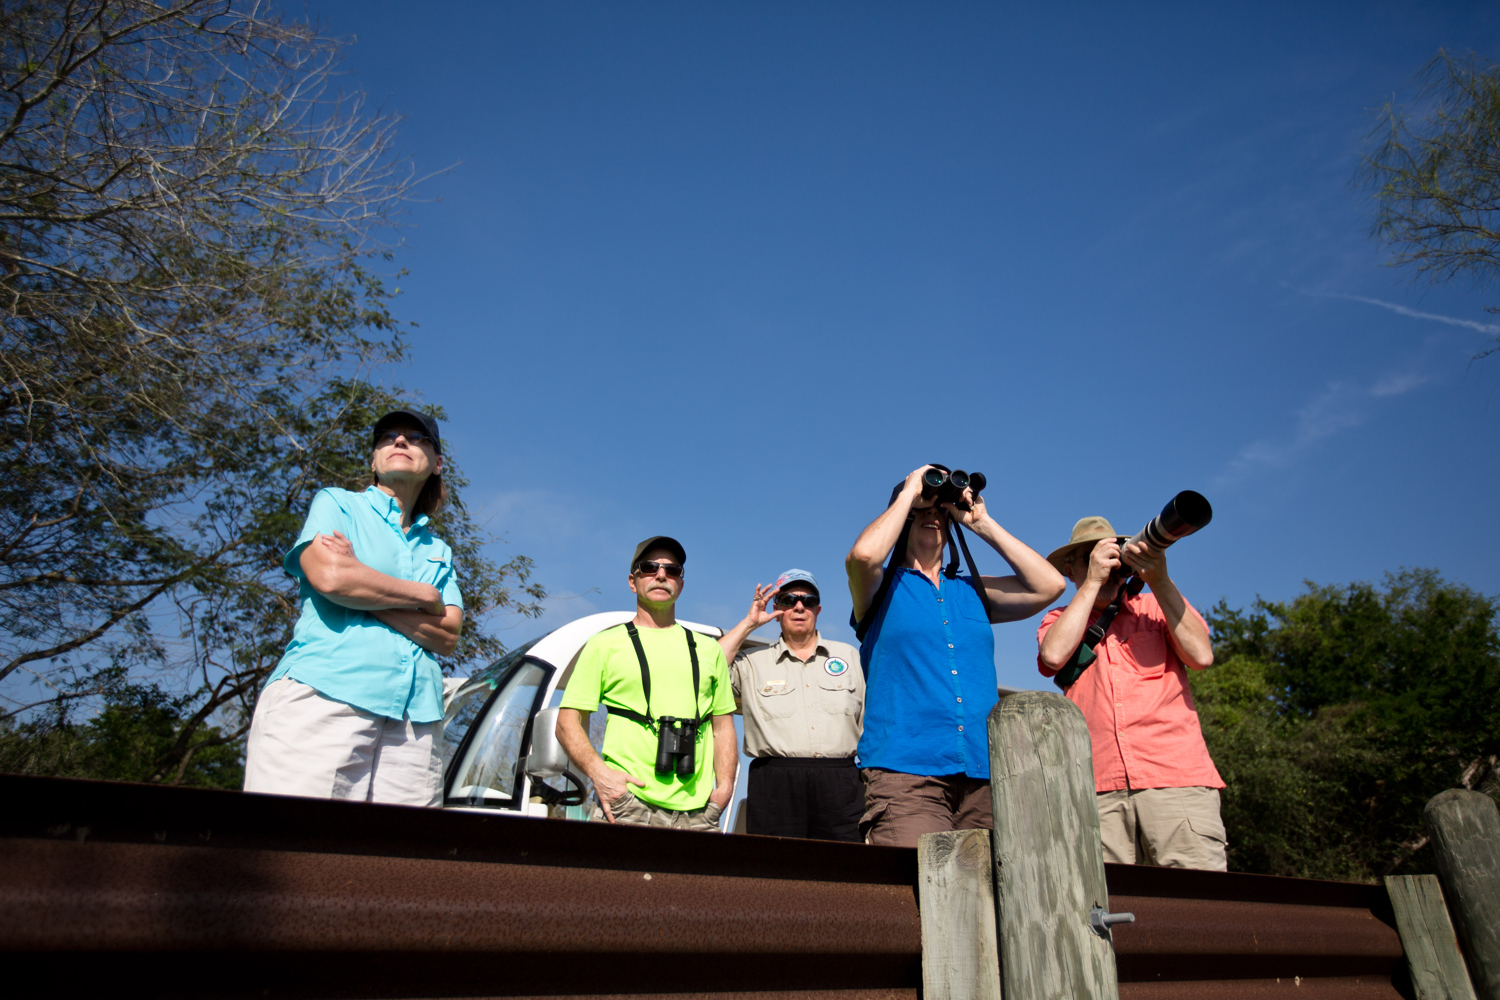 A group of Wisconsinites on the lookout for birds and other wildlife at Resaca de la Palma State Park and World Birding Center in the Lower Rio Grande Valley. The region is one of the preeminent birding locales in the Unites States.